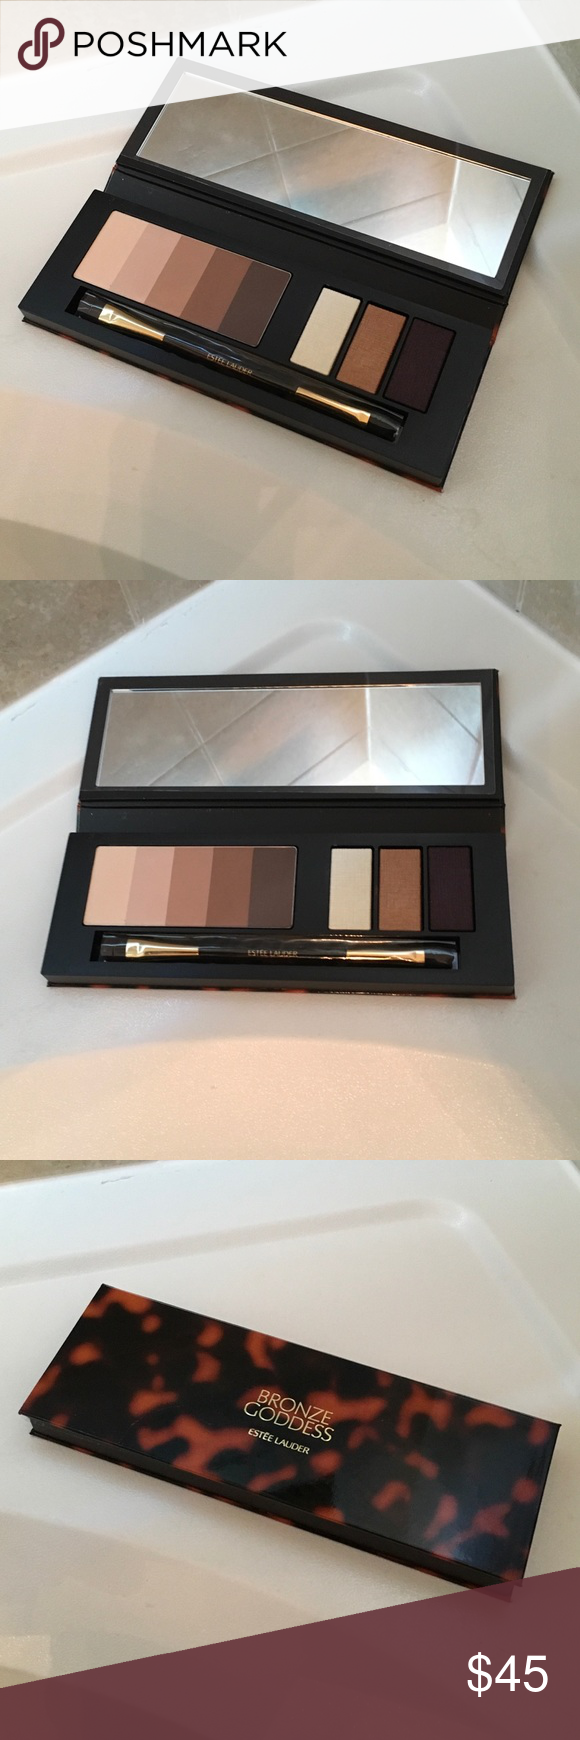 TONIGHT ONLY! Estée Lauder Bronze Goddess Estée Lauder Bronze Goddess The Nudes Eyeshadow Palette 0.45 oz, brand new! Estee Lauder Makeup Eyeshadow